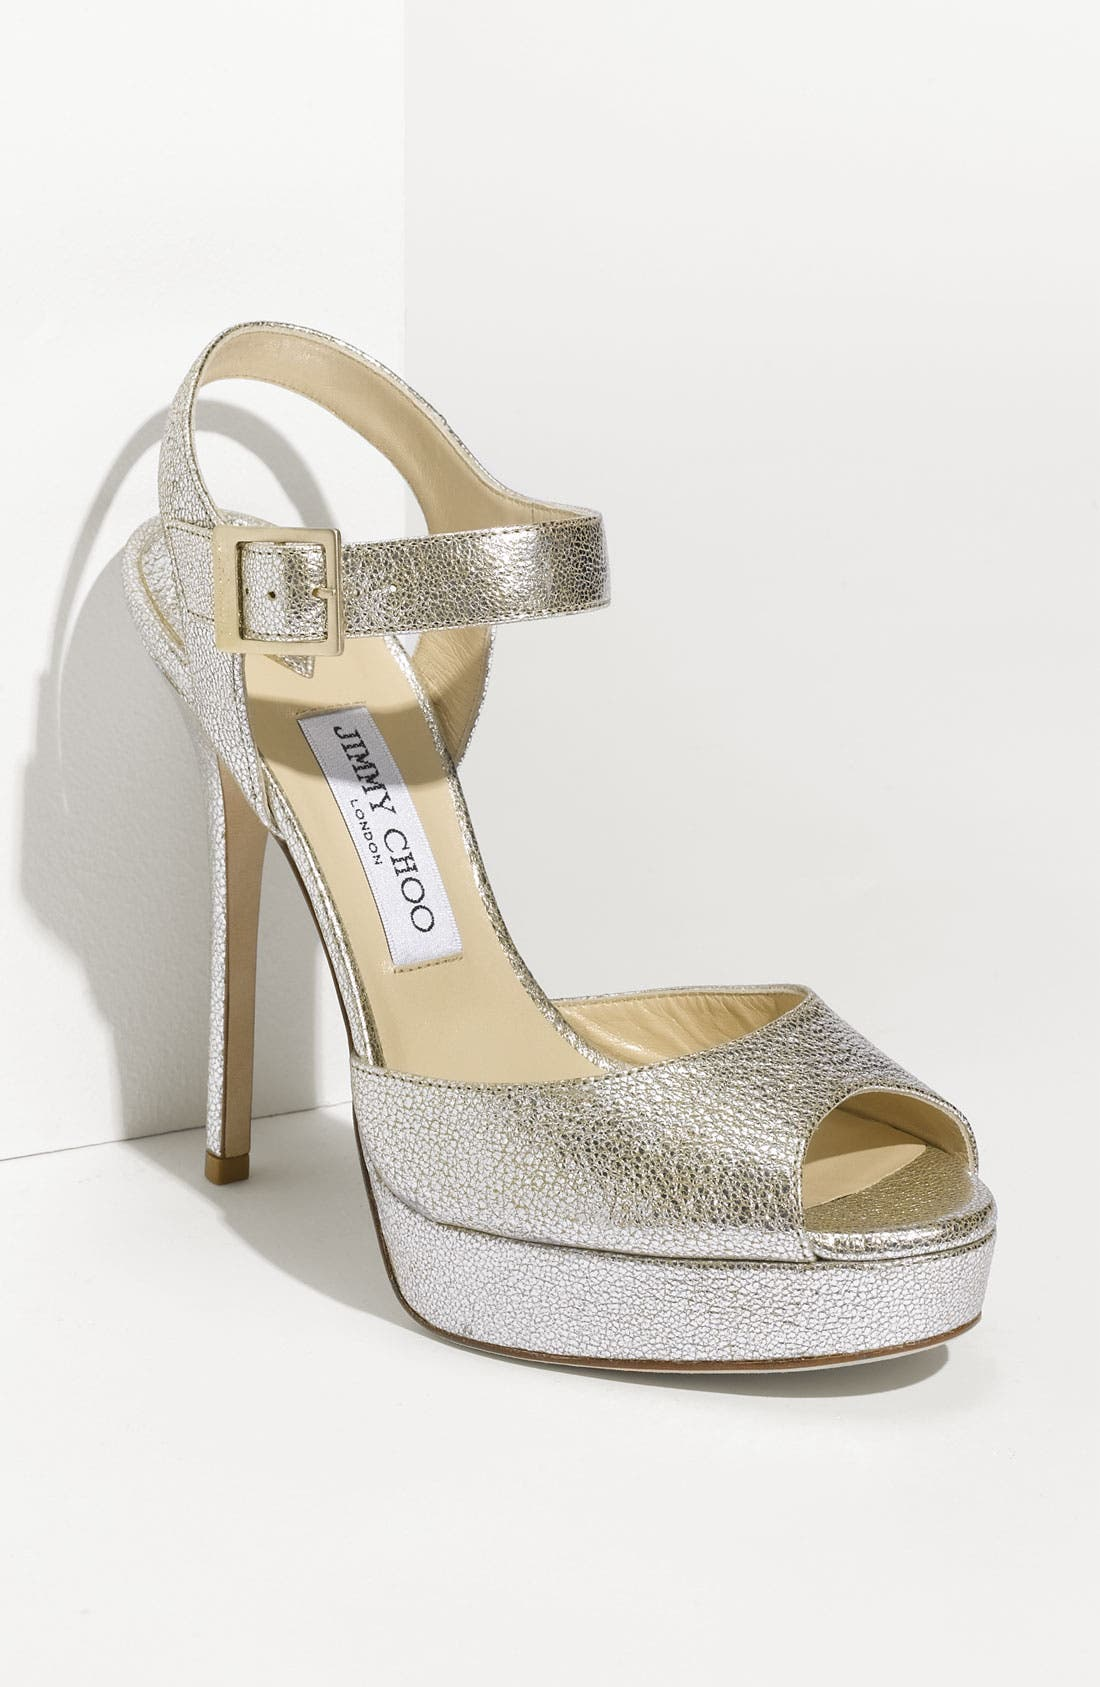 Main Image - Jimmy Choo 'Linda' Sandal (Exclusive Color)